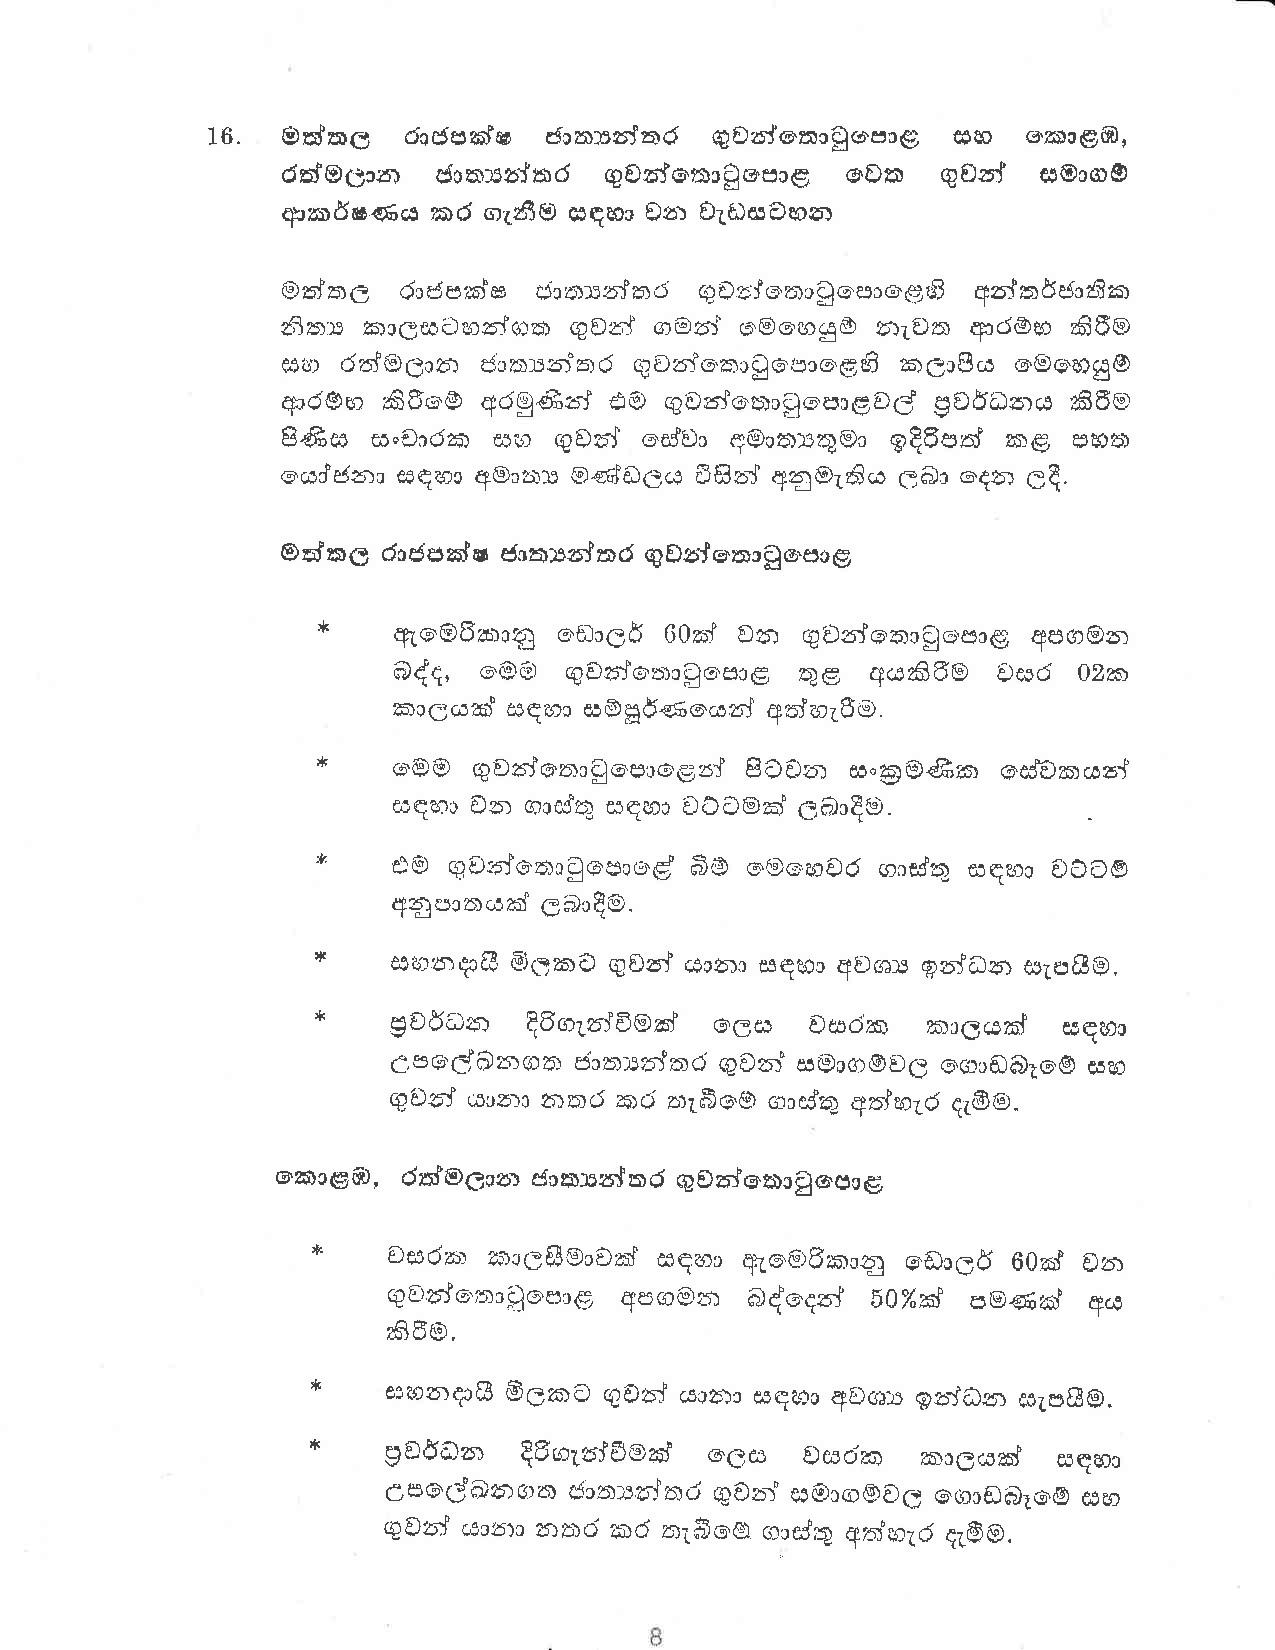 Cabinet Decision on 27.02.2020 page 008